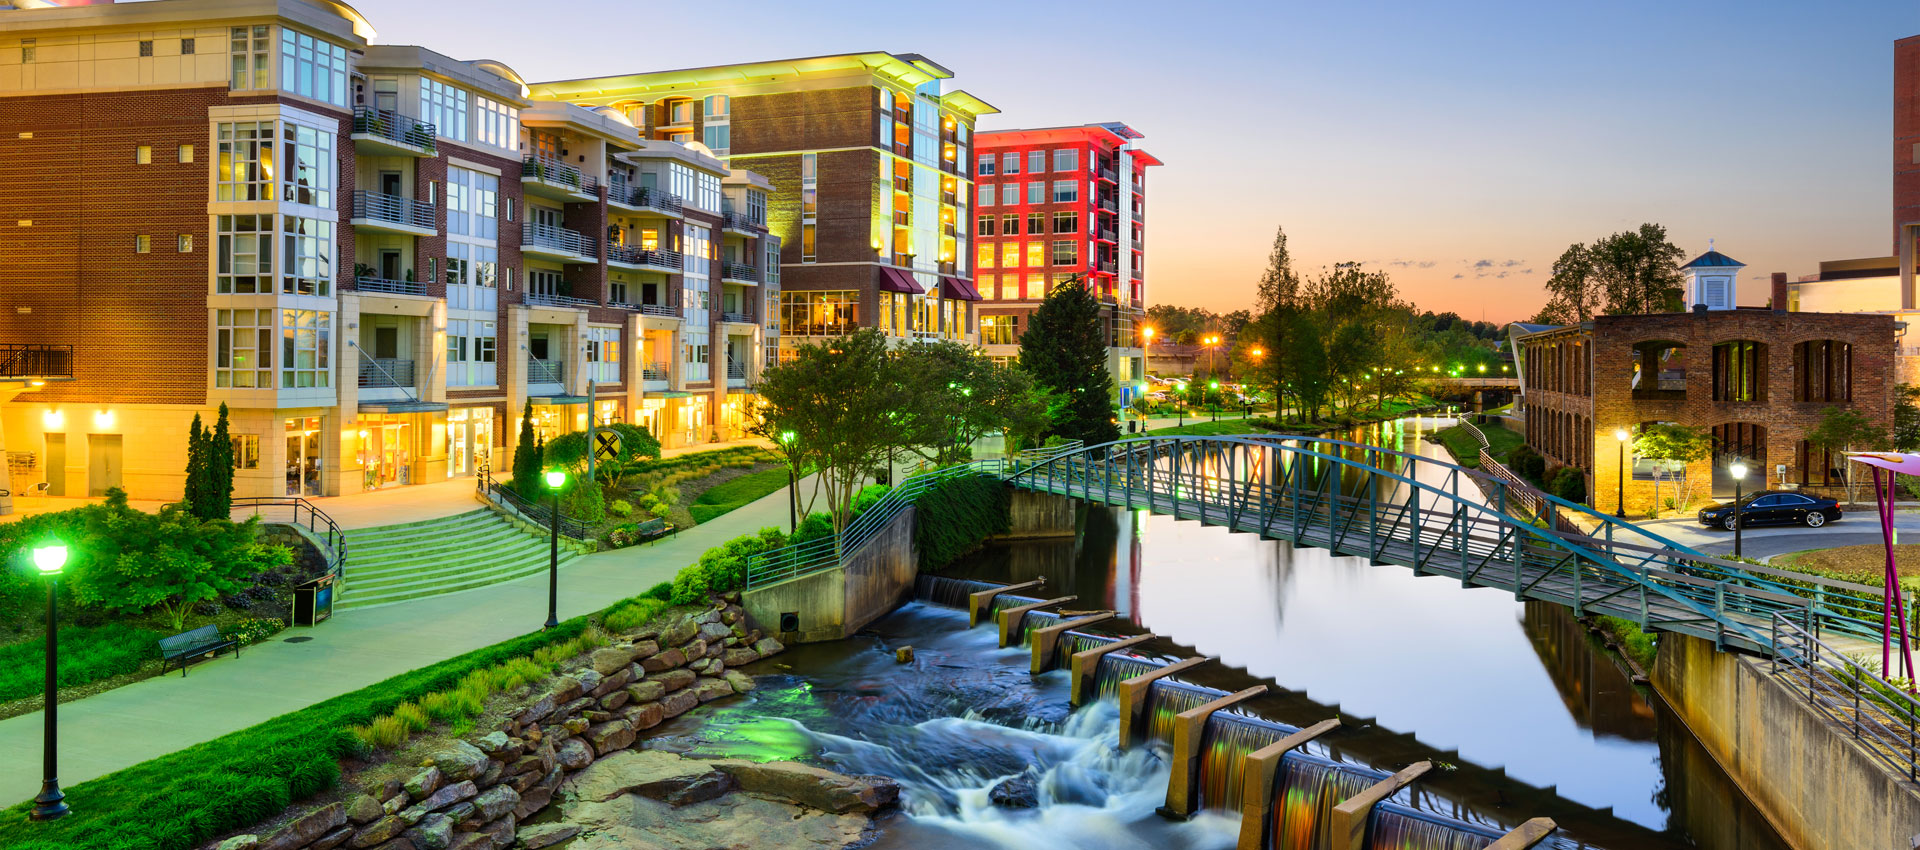 Image of downtown Greenville SC and HPLP Law